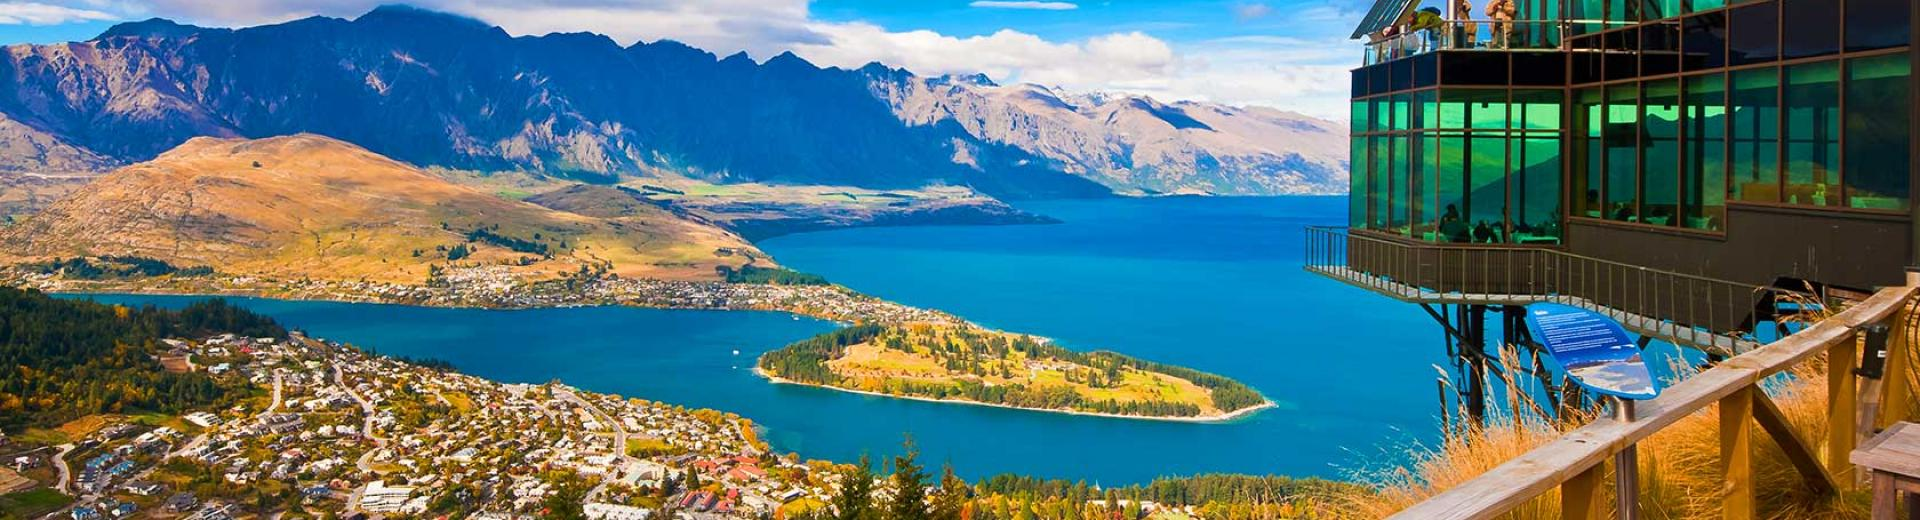 destinations south pacific new zealand south island